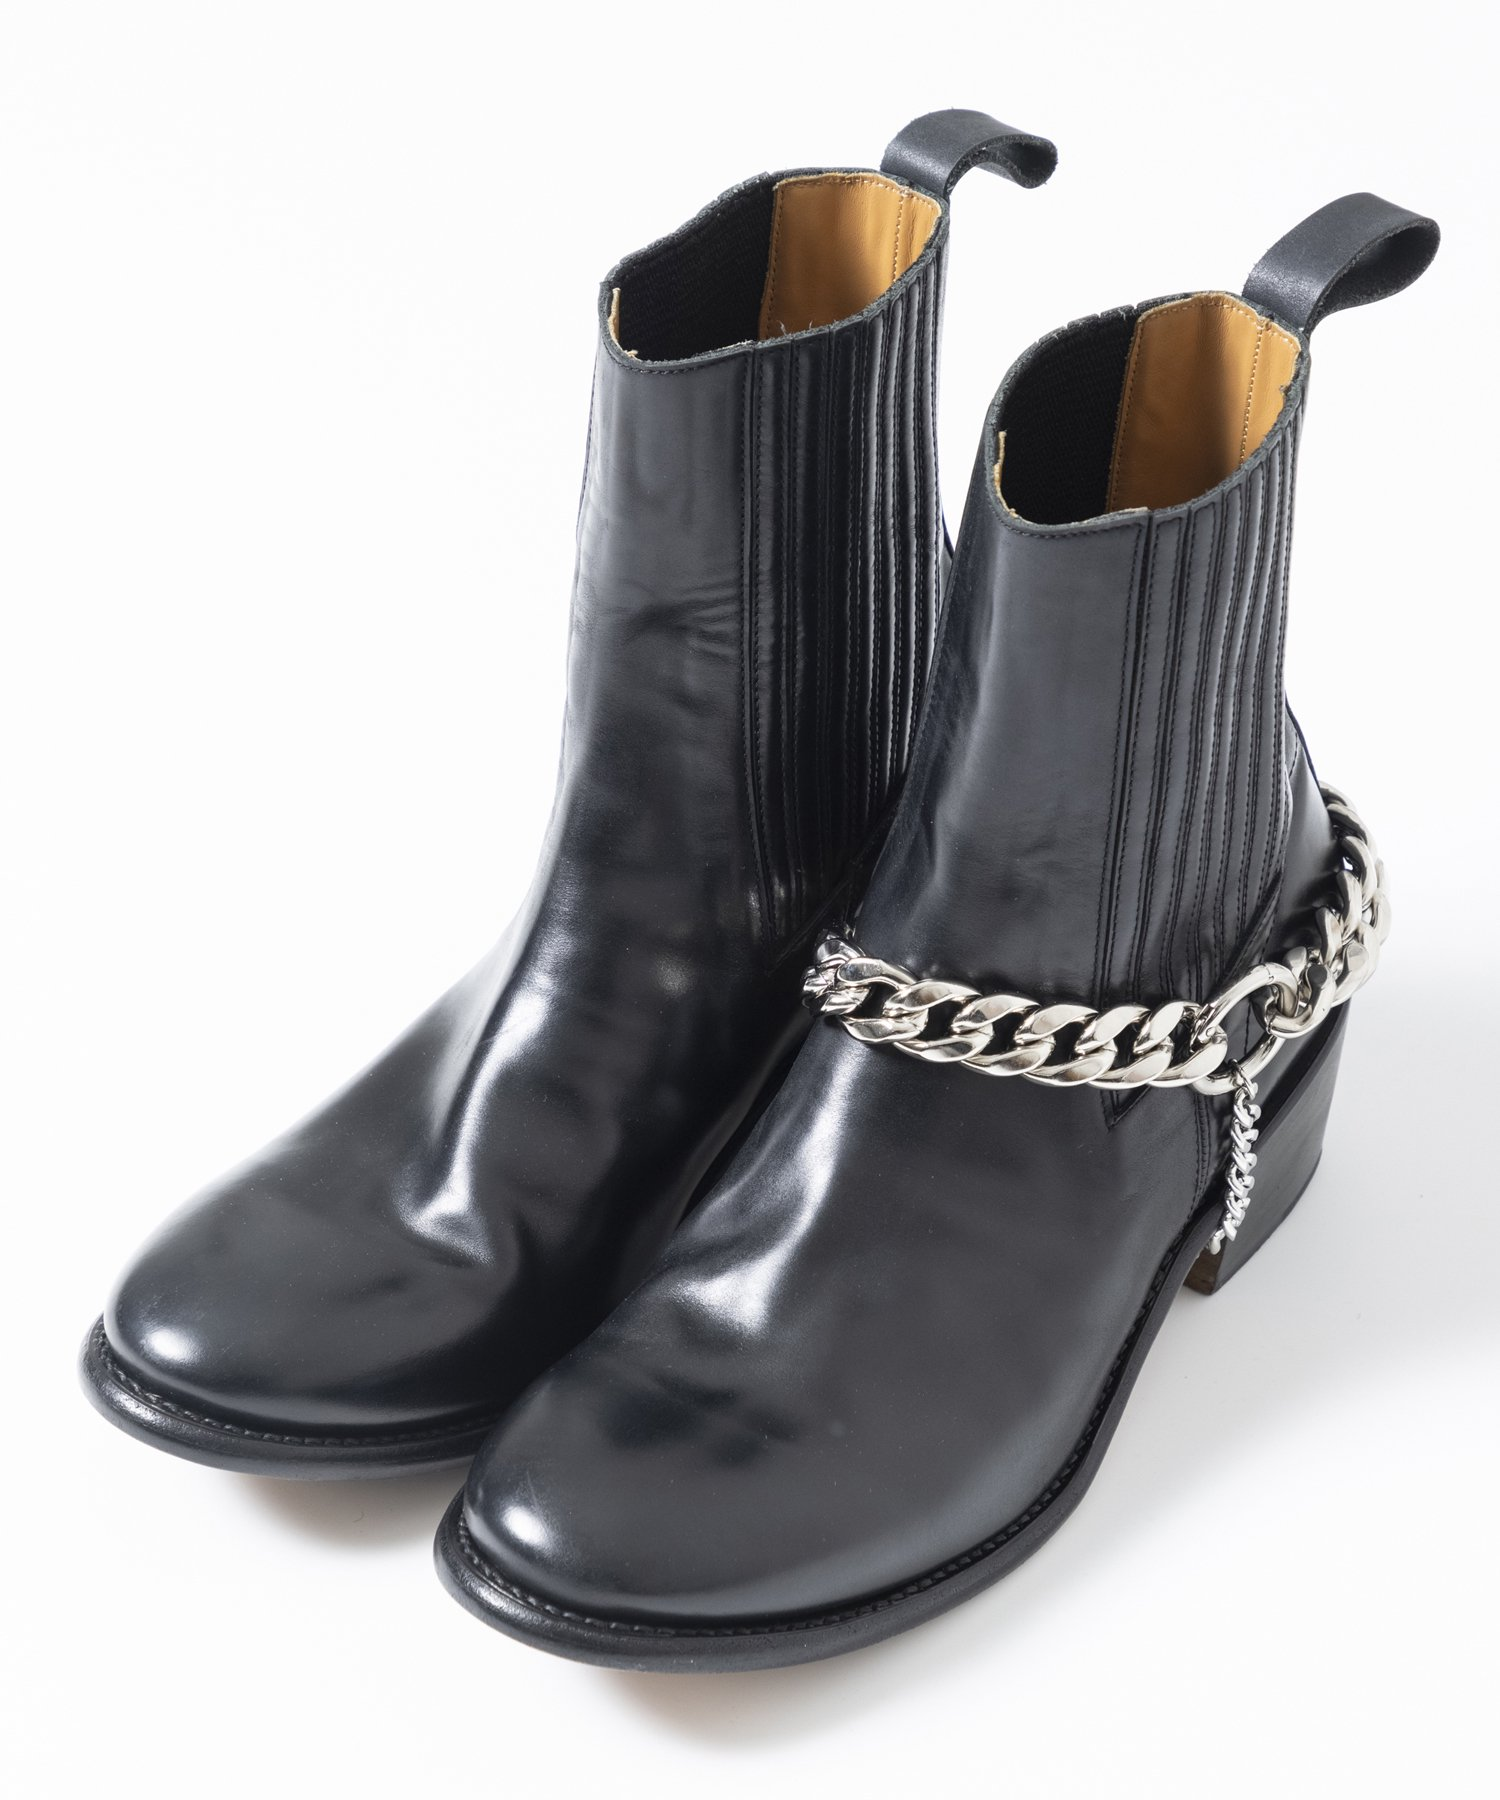 BOOTS CHAIN